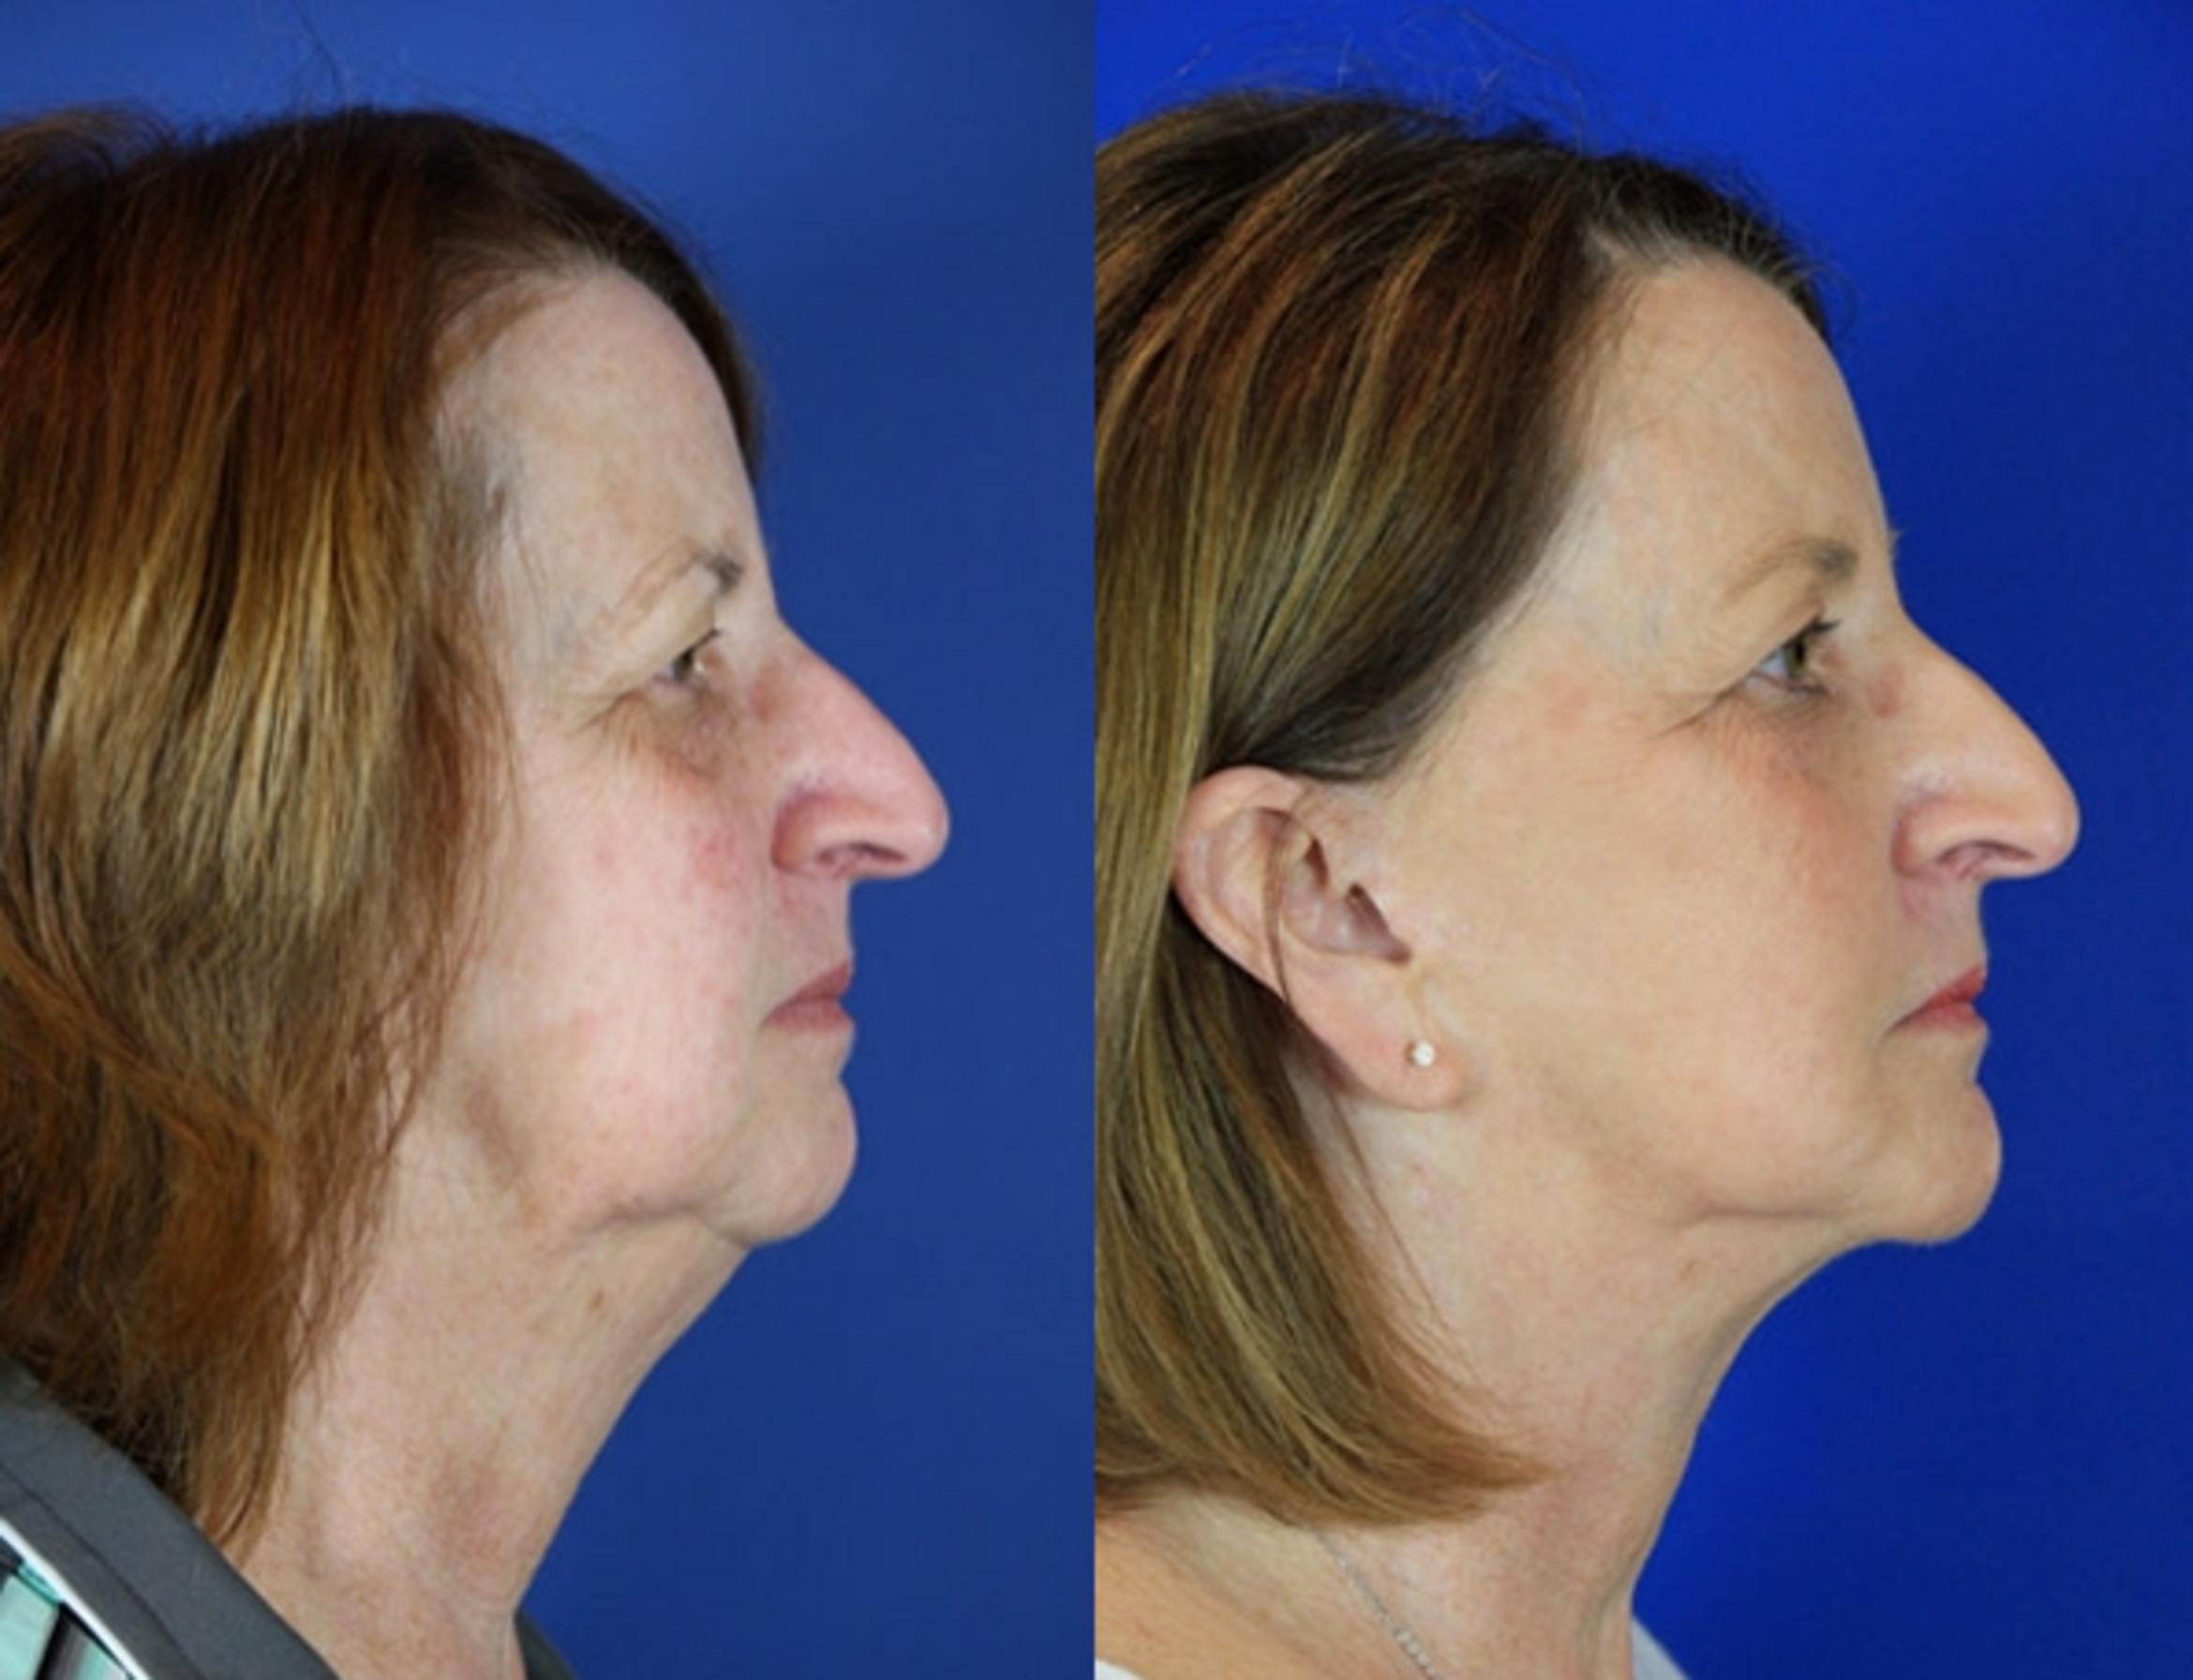 Facelift / Reflection Lift Case 90 Before & After Right Side | Brentwood, TN | Youthful Reflections